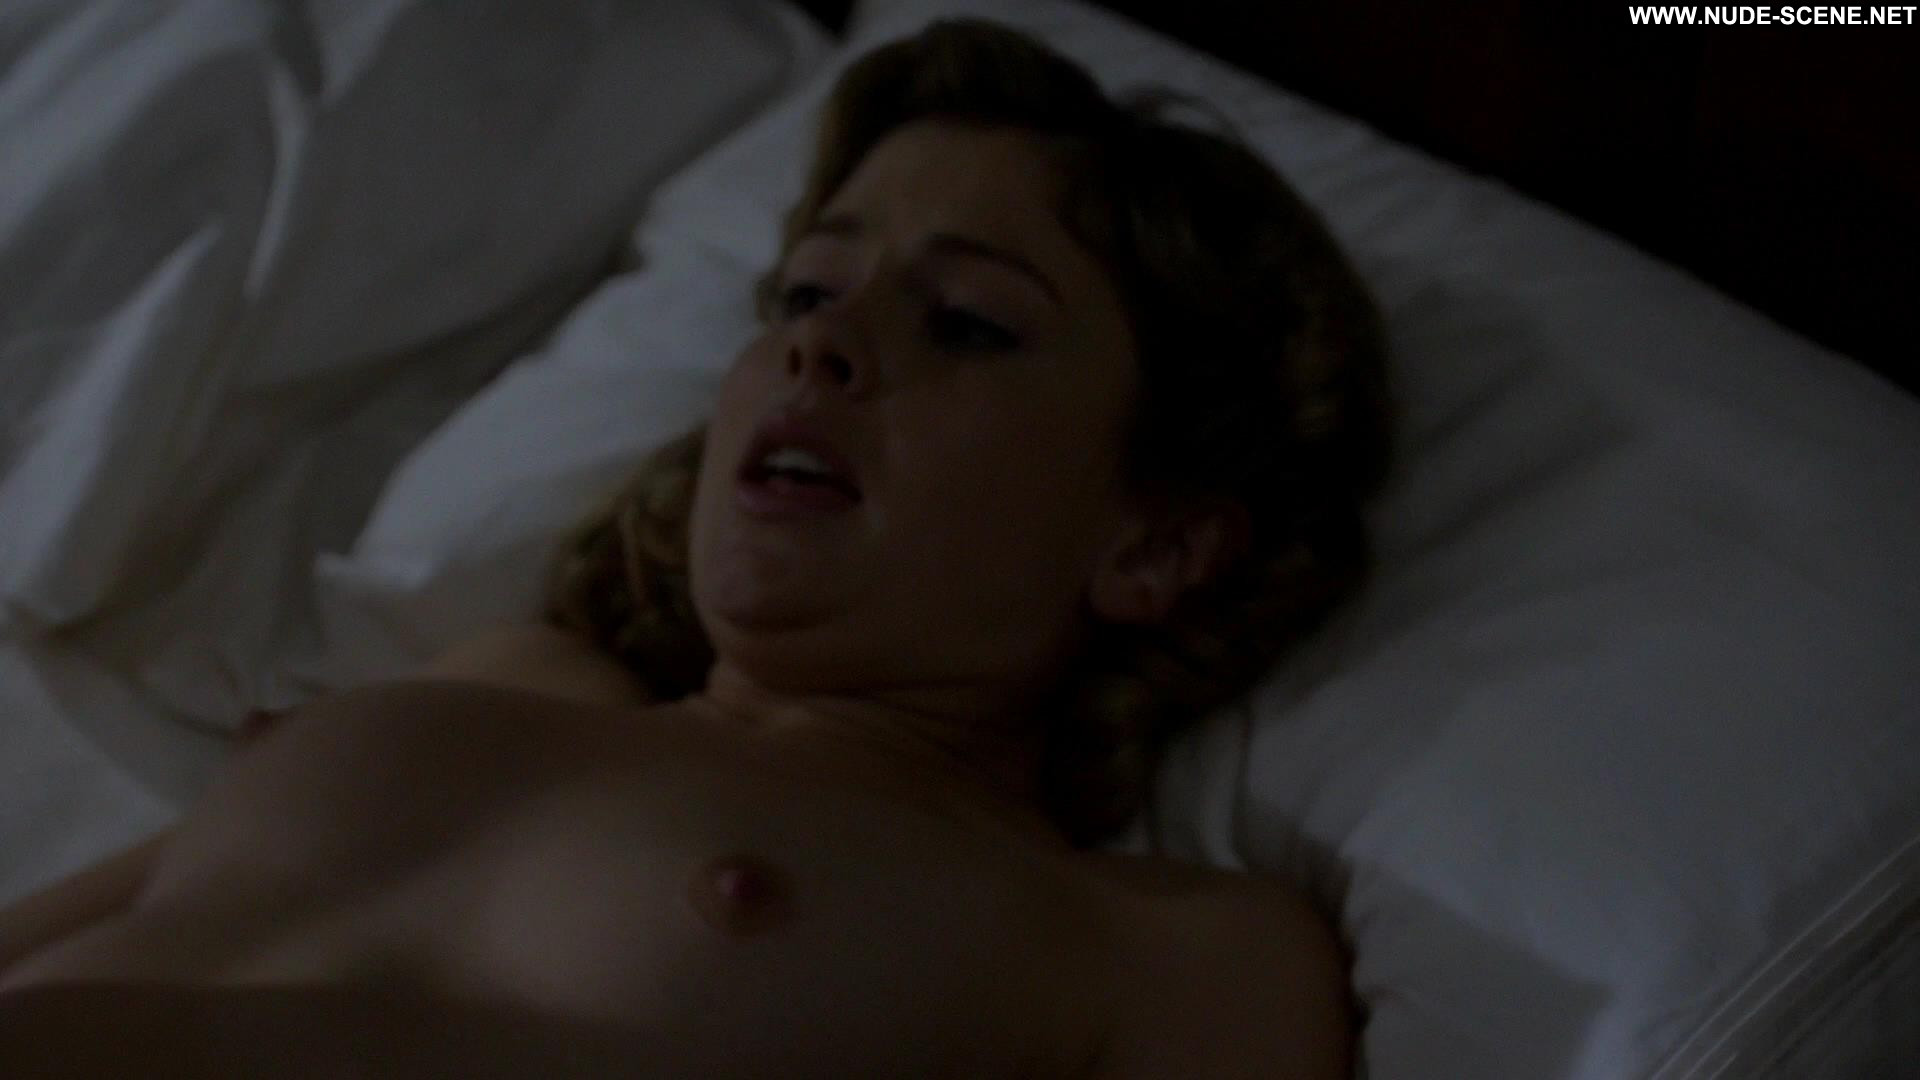 Rose mciver nude sex scene in blinder movie 1